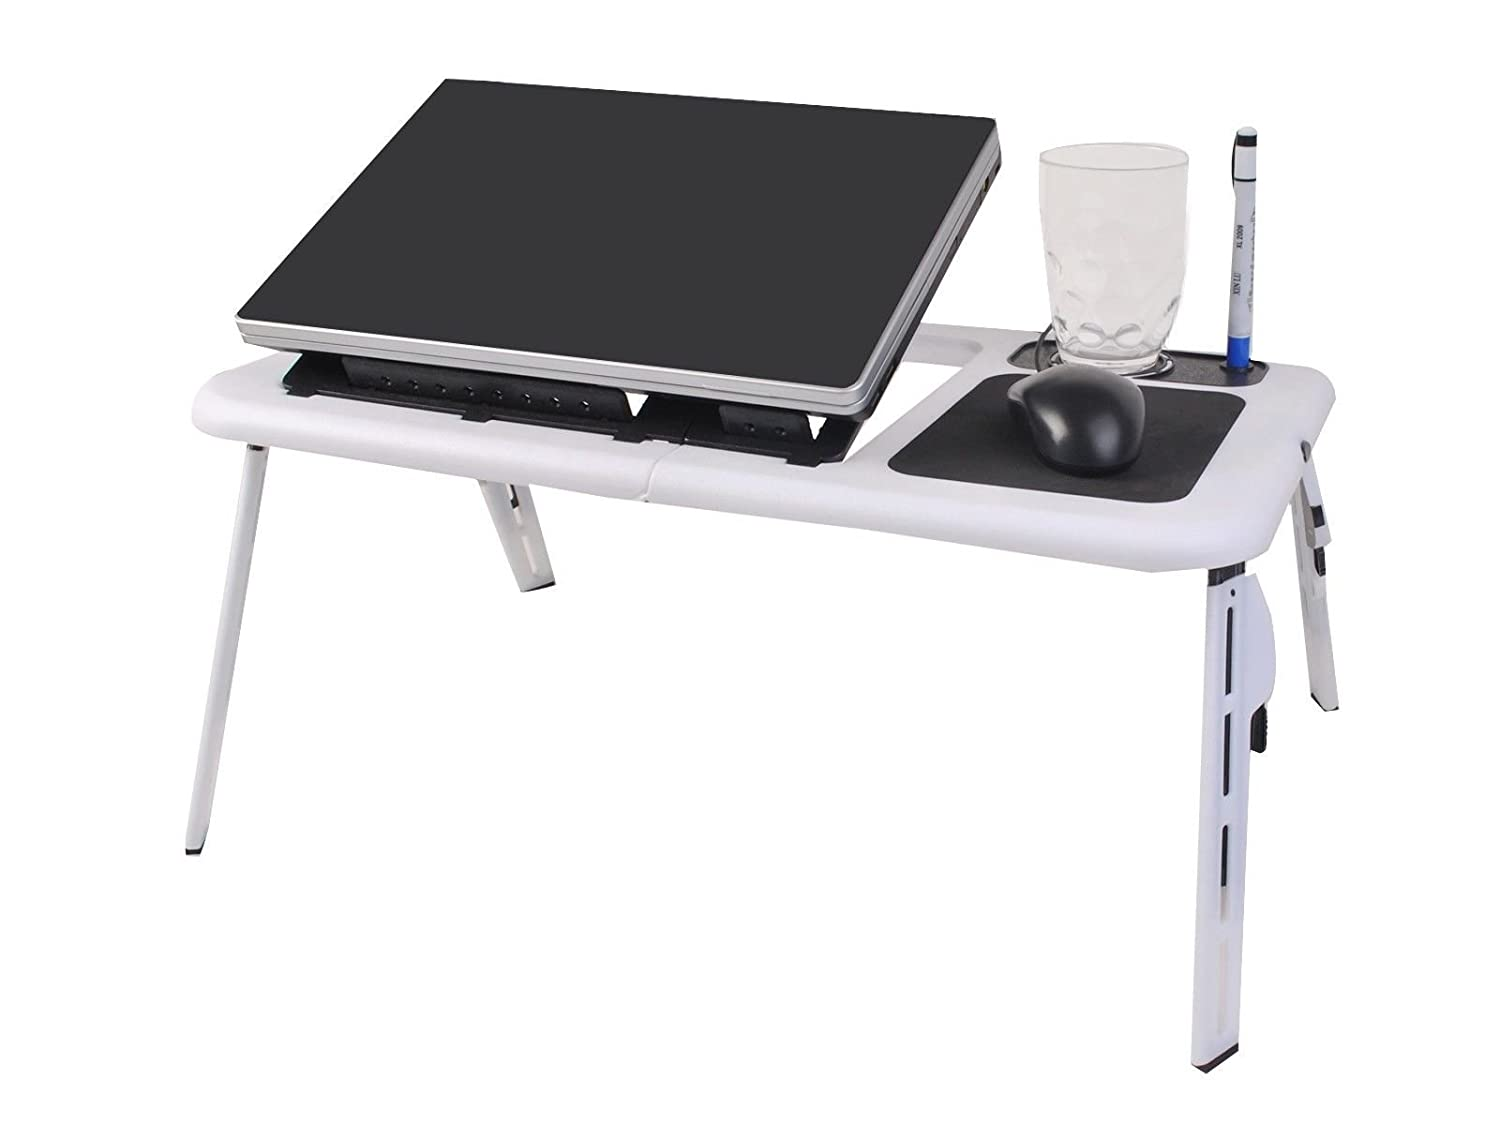 Amazon foldable laptop table tray desk wcooling fan tablet amazon foldable laptop table tray desk wcooling fan tablet desk stand bed sofa couch by snc office products geotapseo Gallery